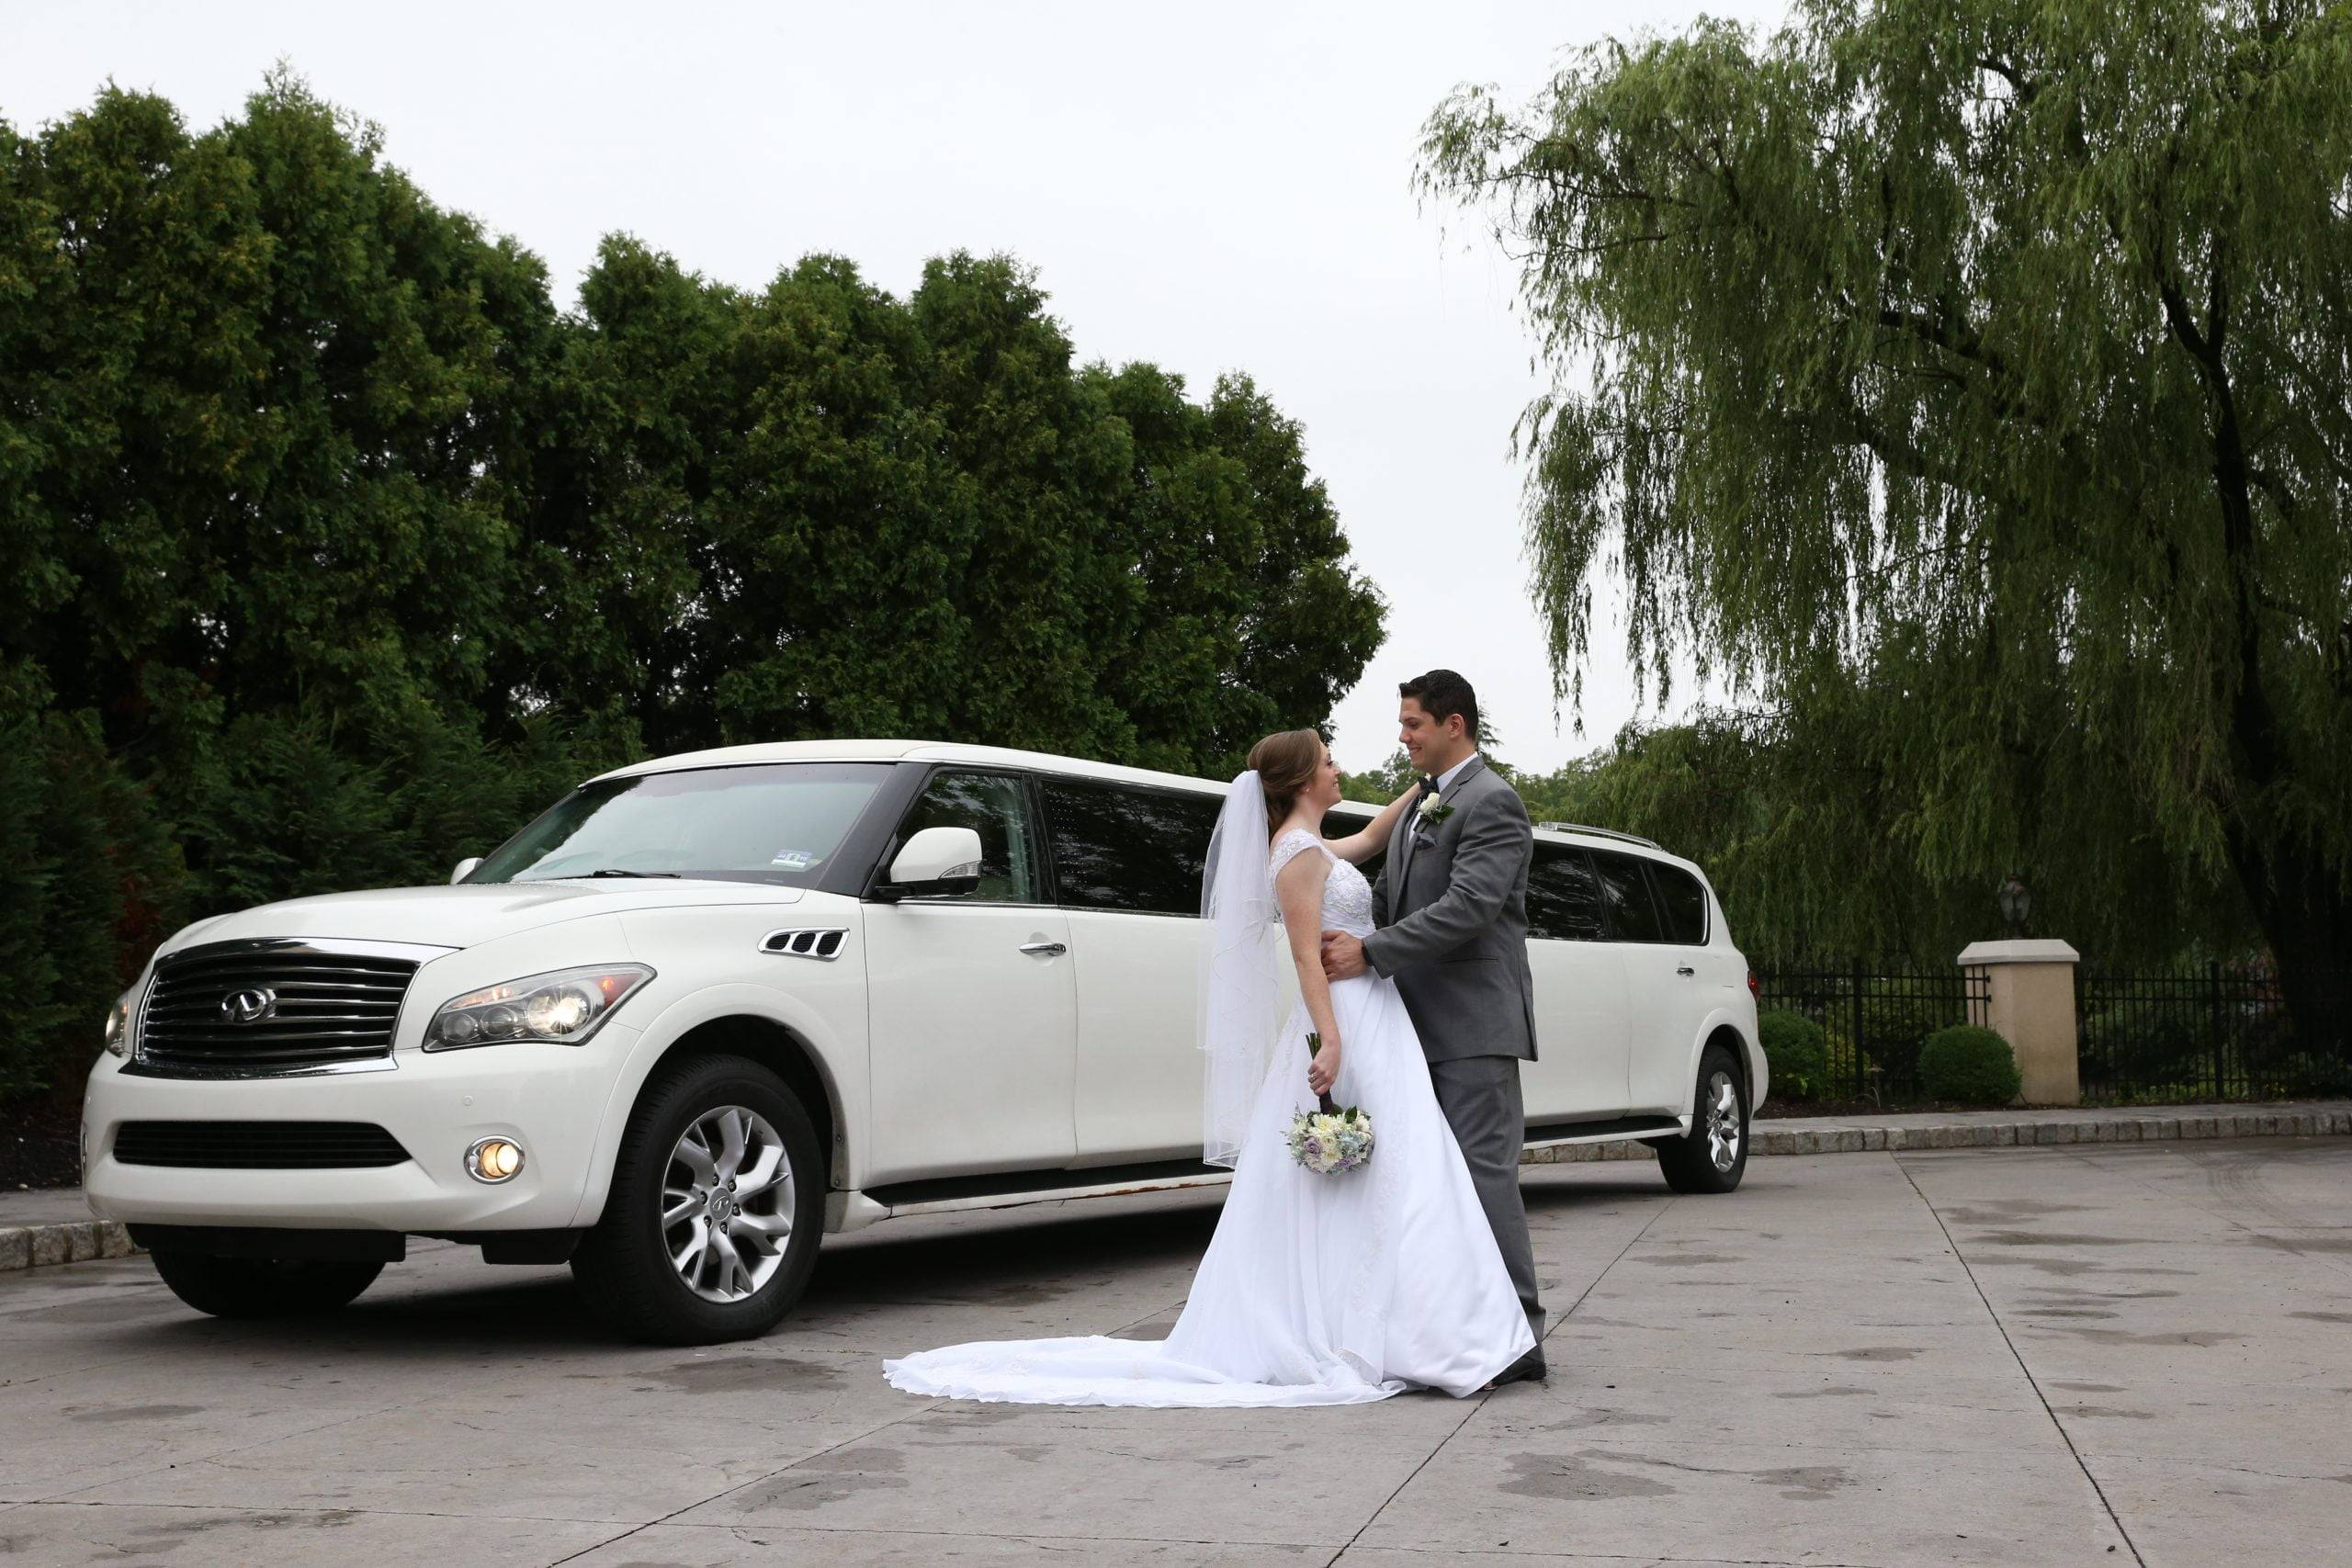 Bridgewater Manor bride and groom by limo